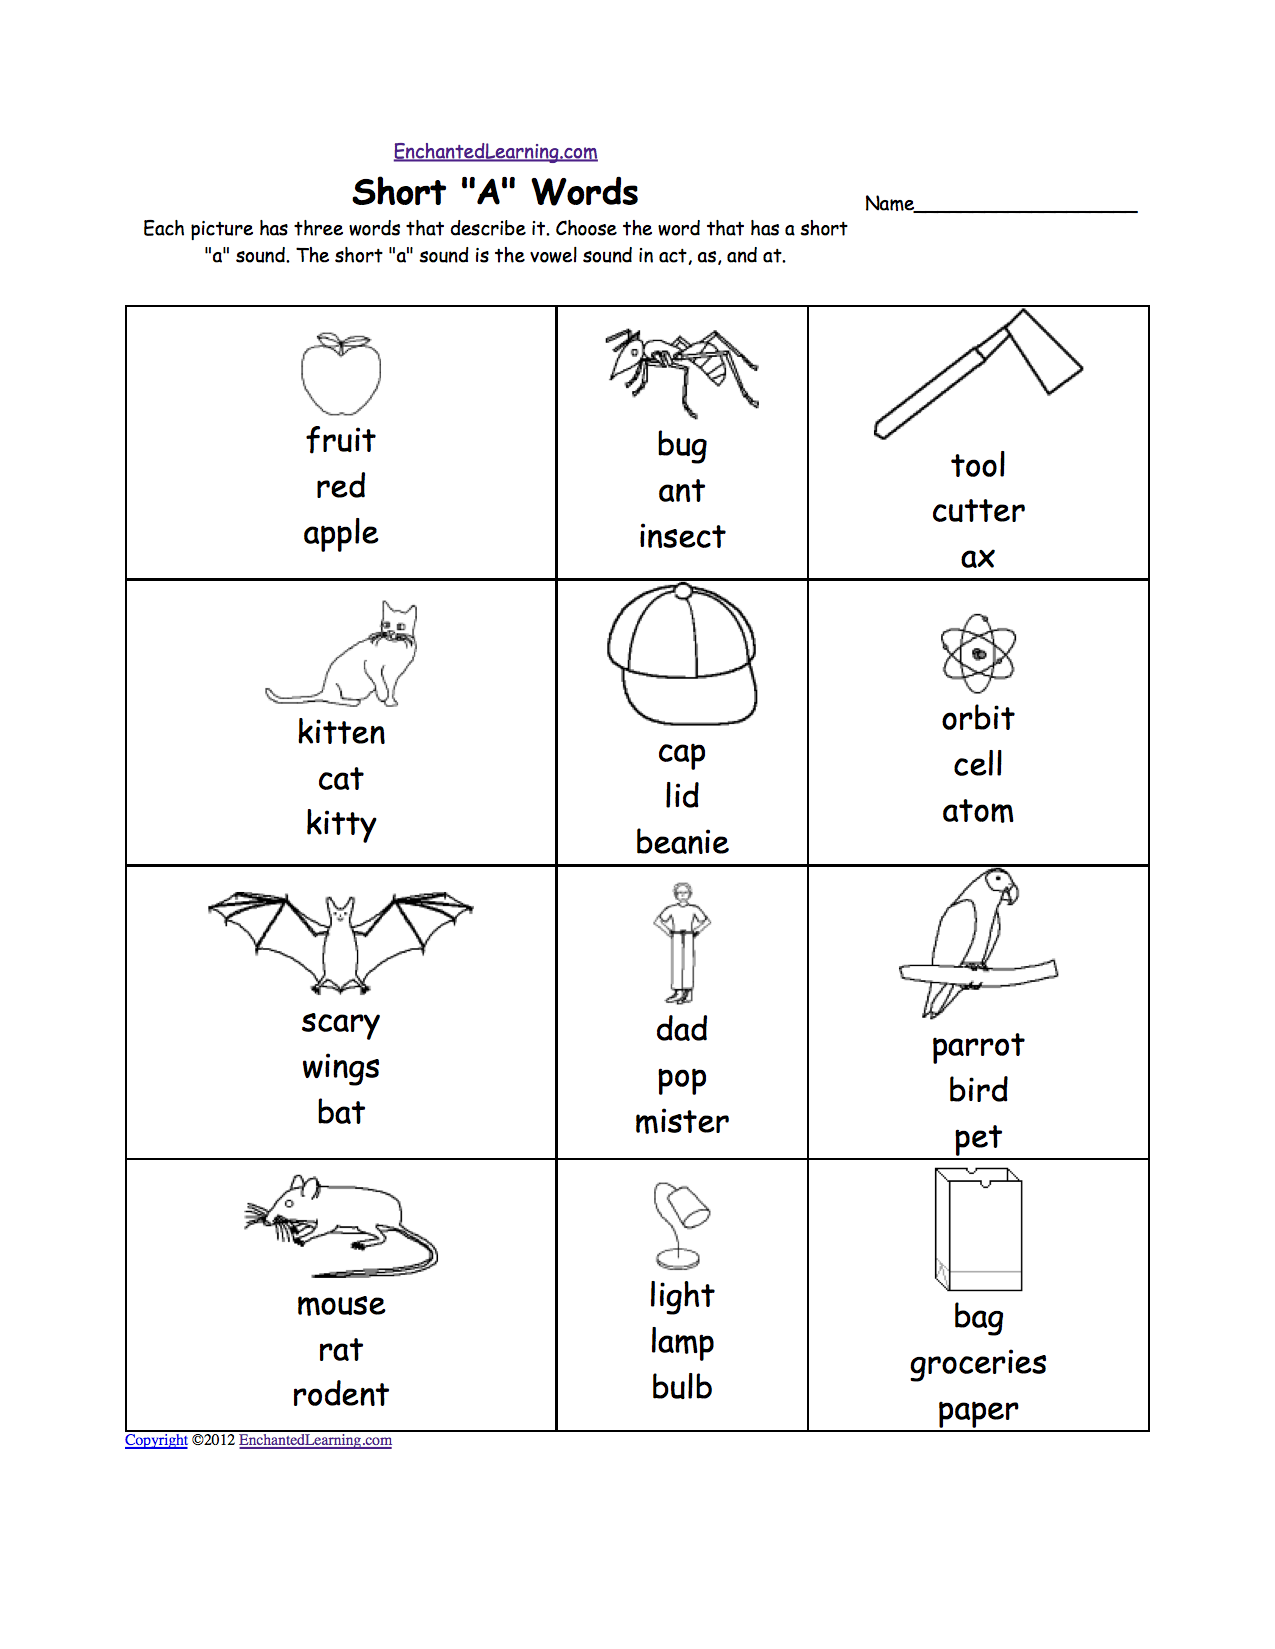 Worksheet Ar Words Phonics letter a alphabet activities at enchantedlearning com